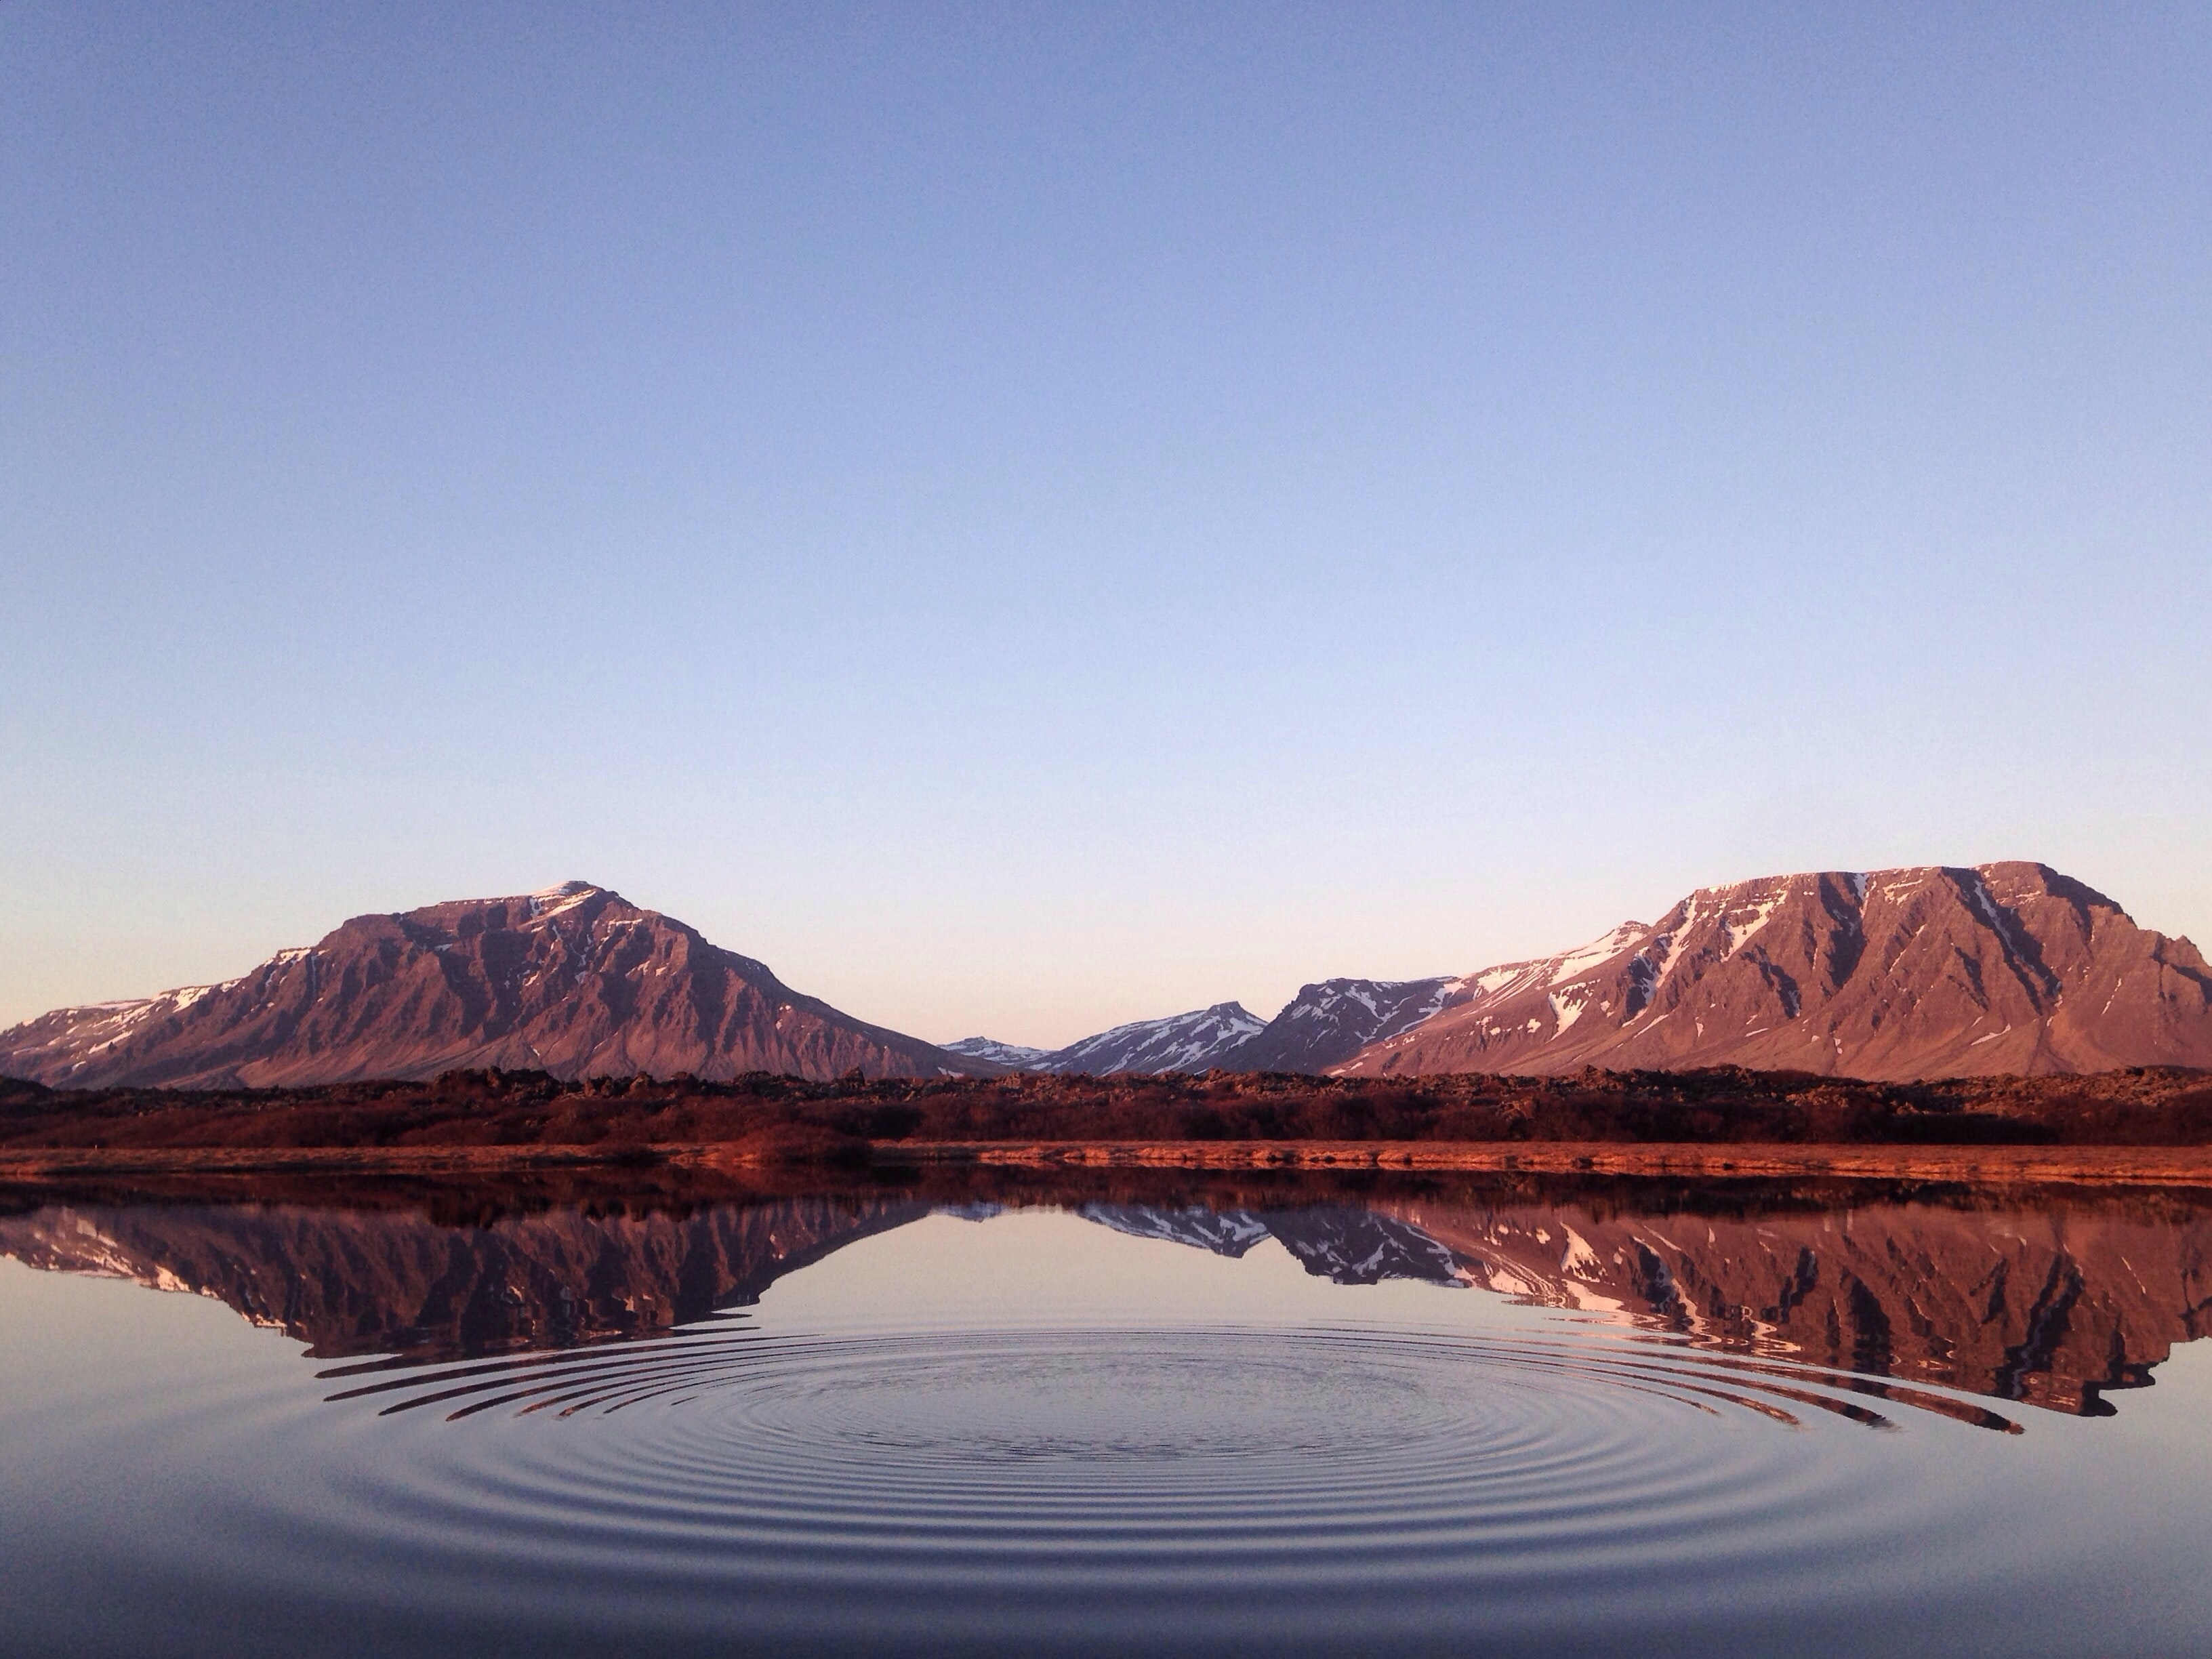 A ripple in the still surface of a lake with flat mountains on the distant shore